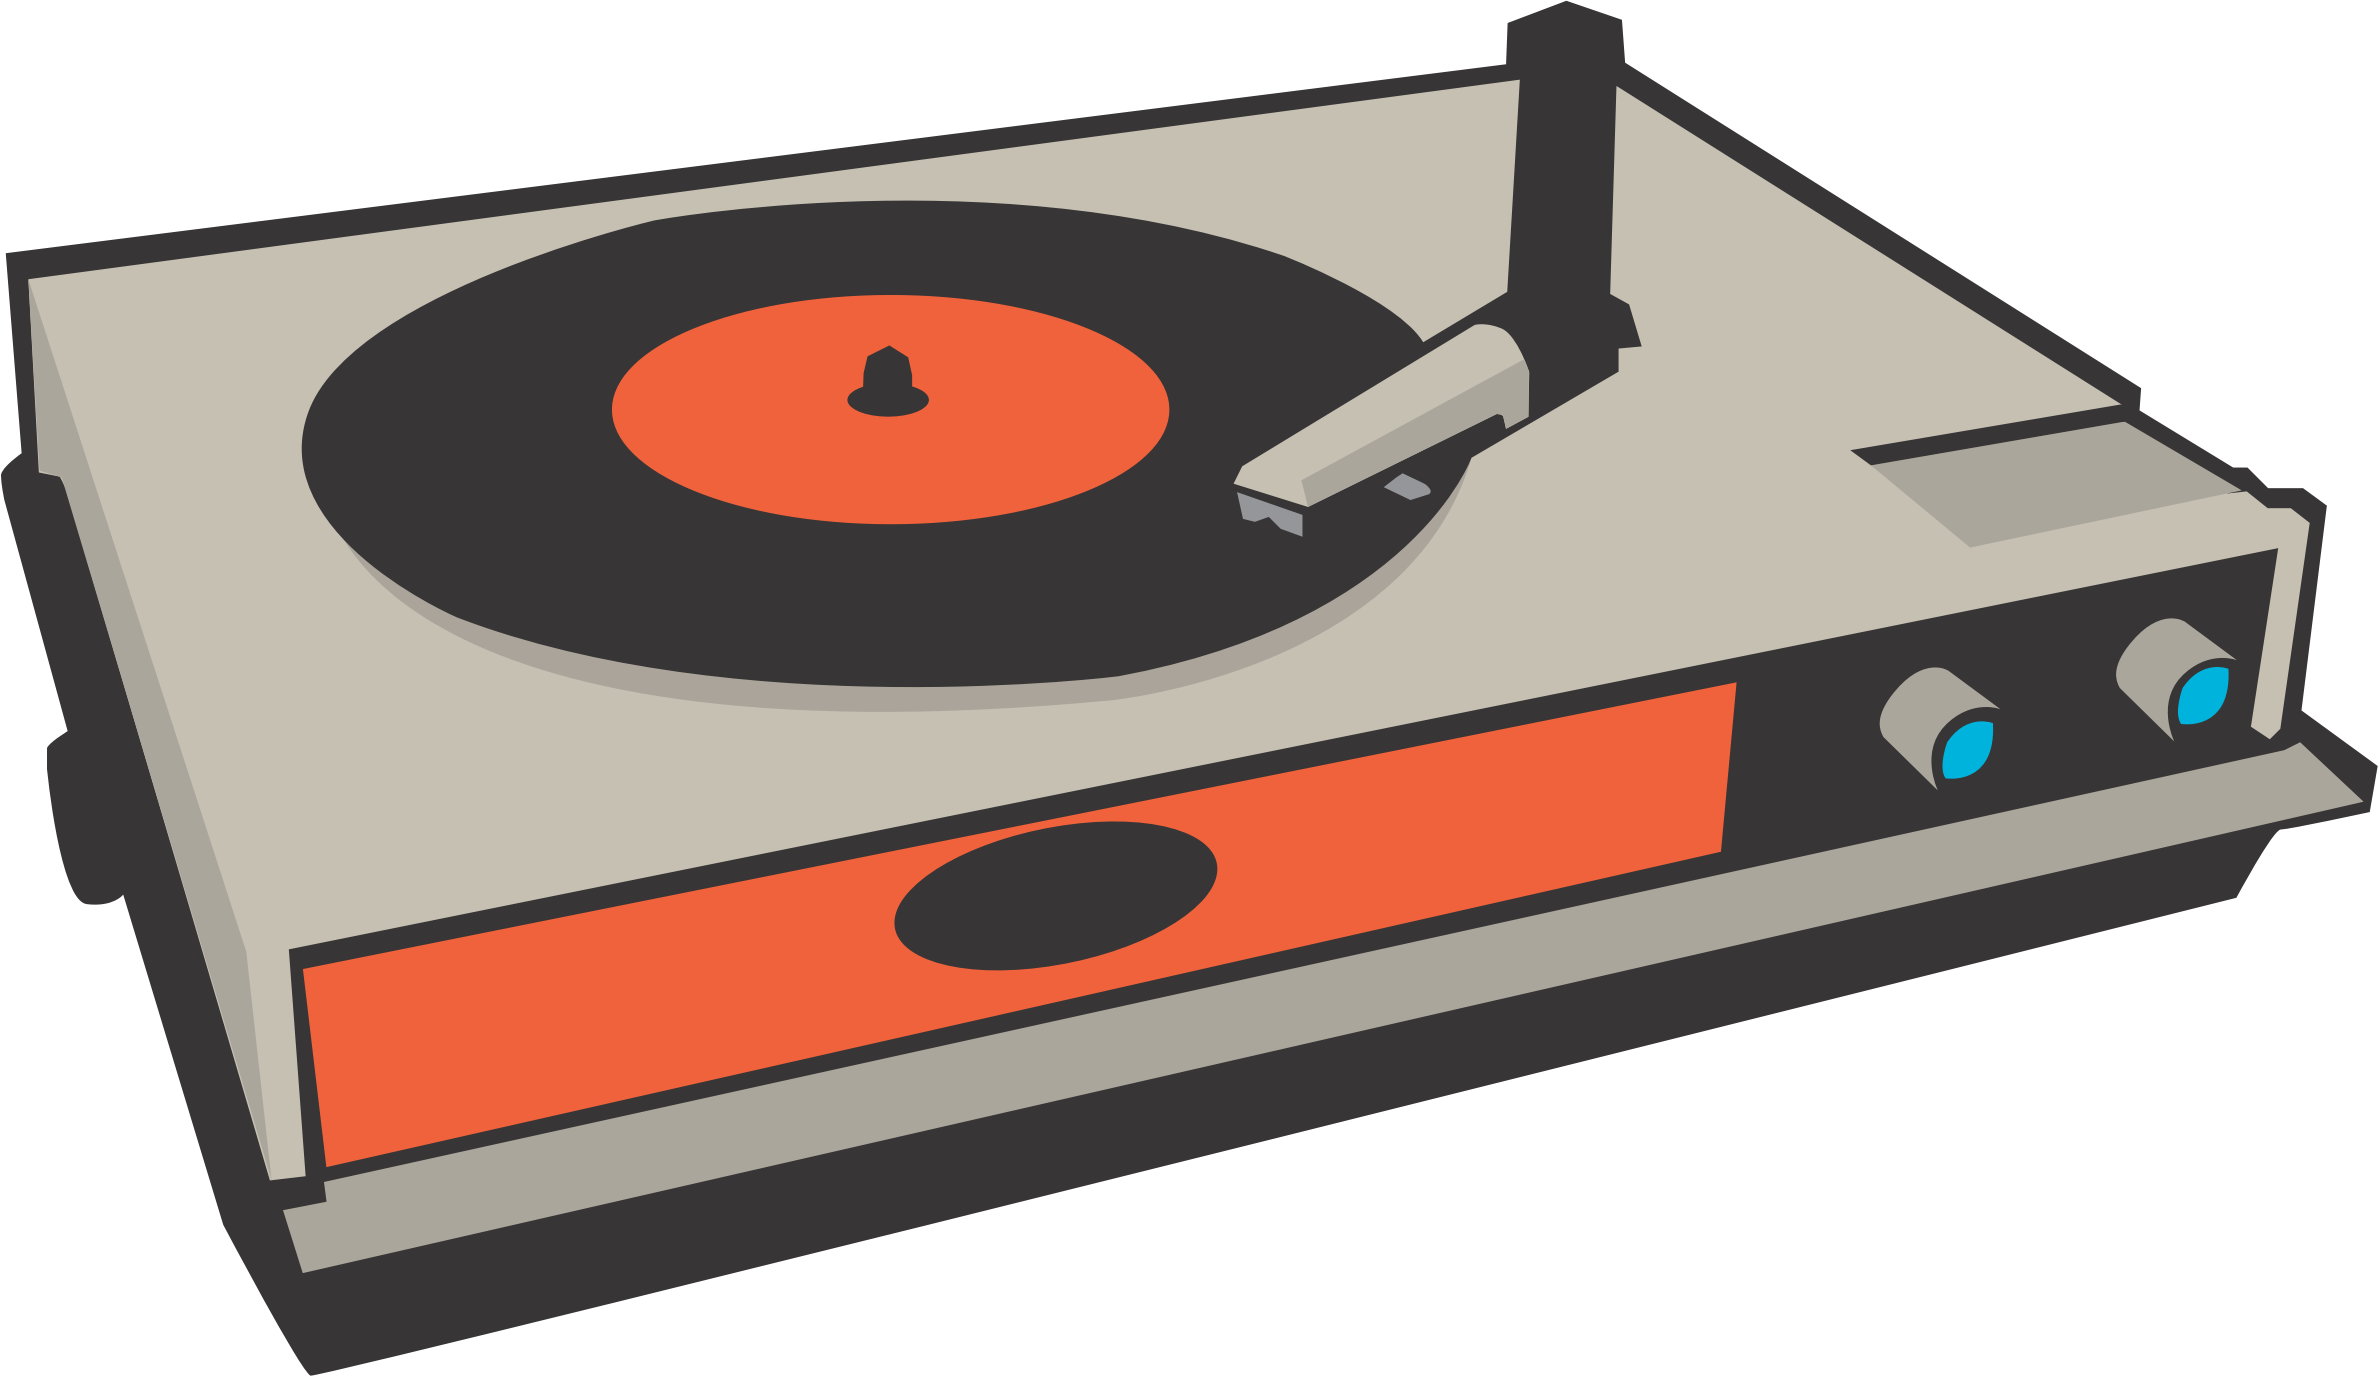 Phonograph Record Disc Jockey Music Clip Art.